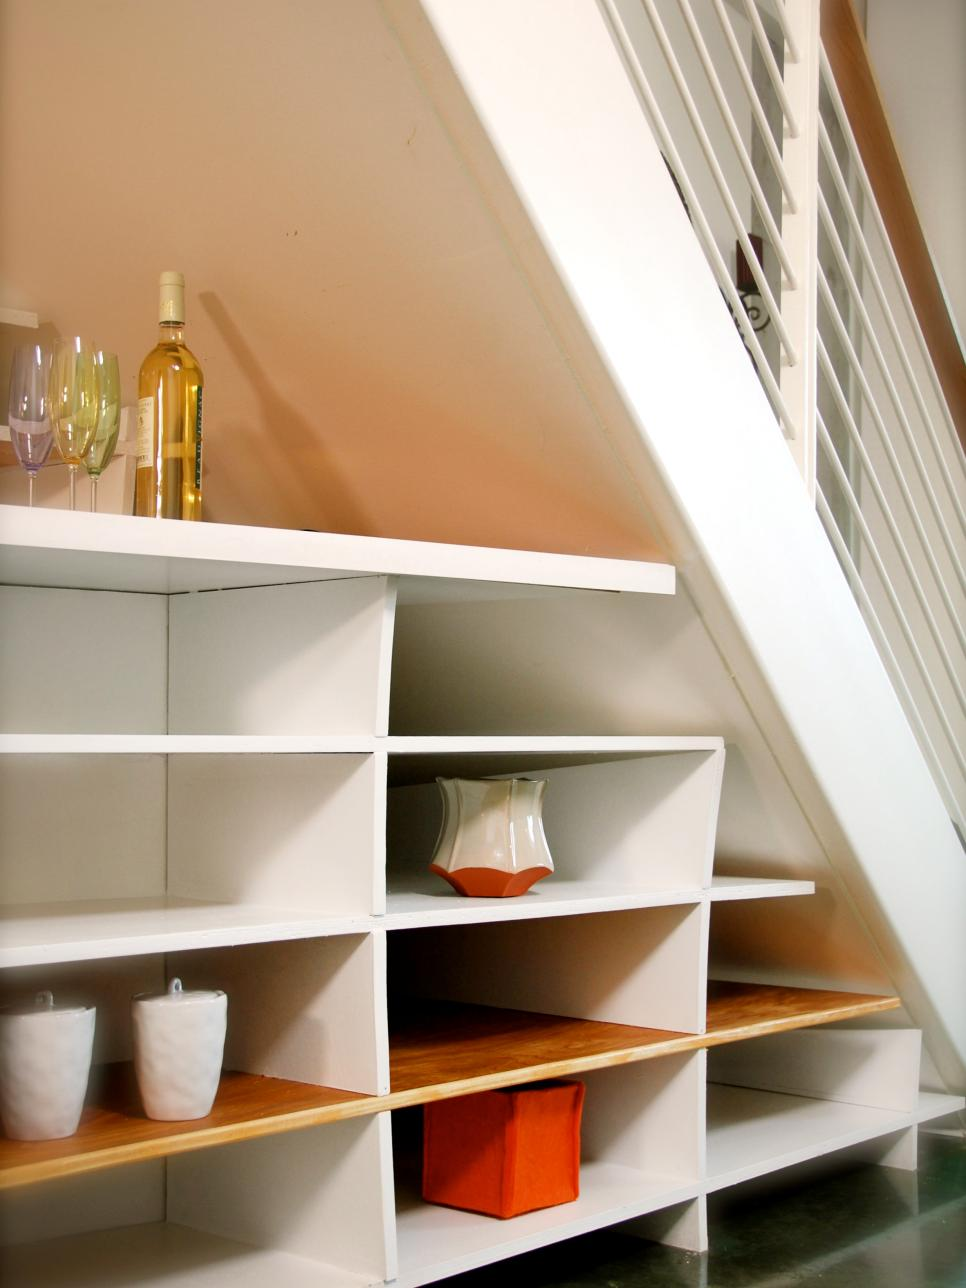 Shelf Design Utilize Spaces With Creative Shelves  Hgtv